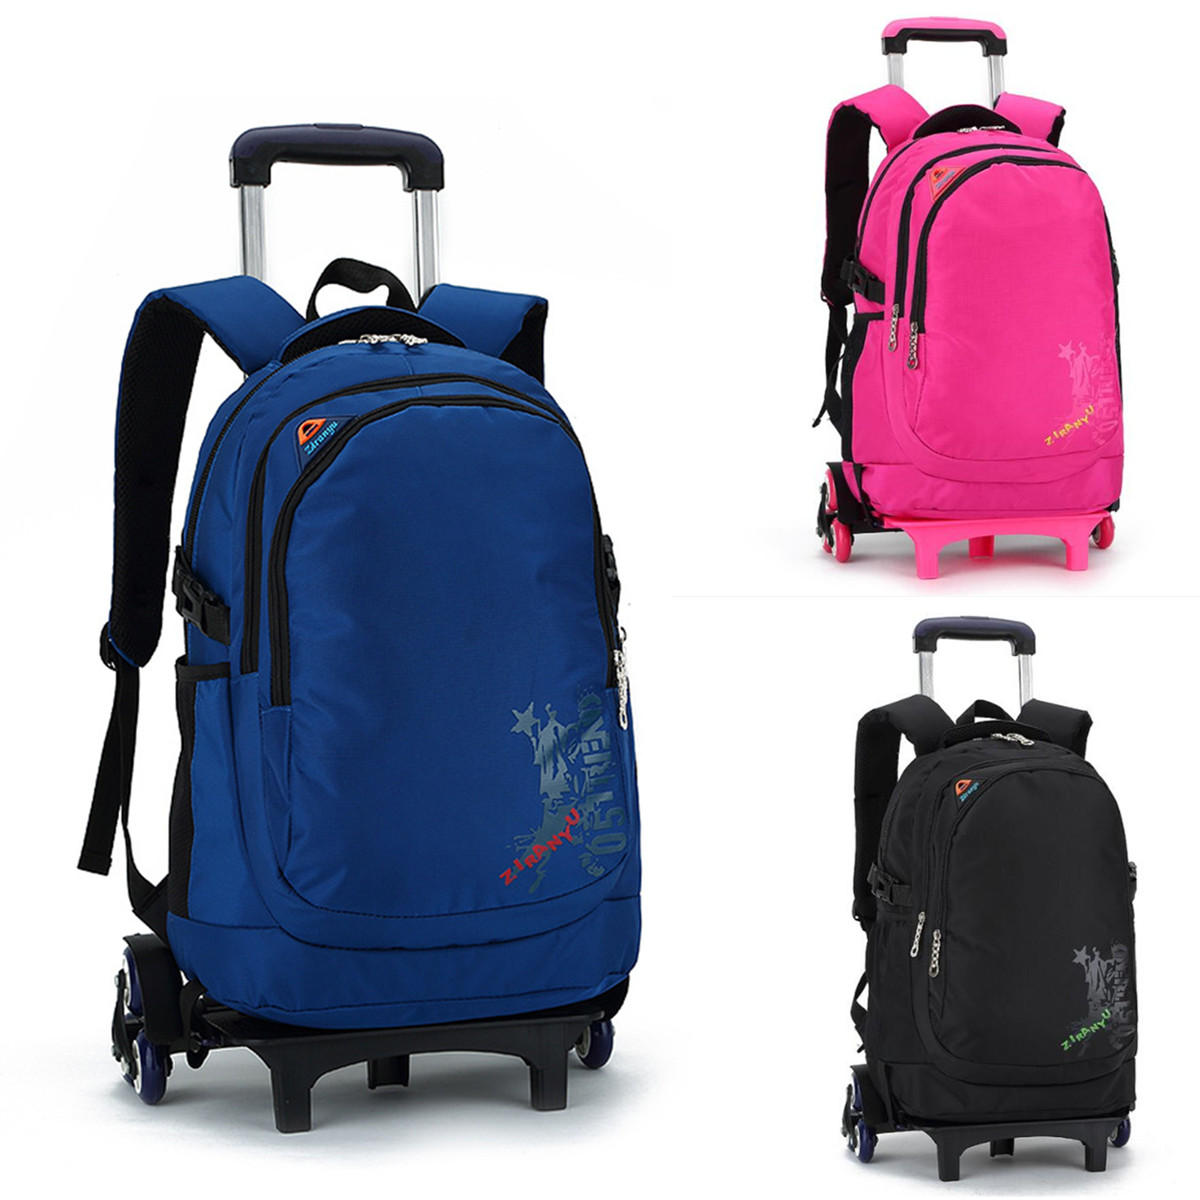 0f0e4f9031 35l trolley school bag camping travel luggage backpack children kids  student bags with wheels Sale - Banggood.com sold out